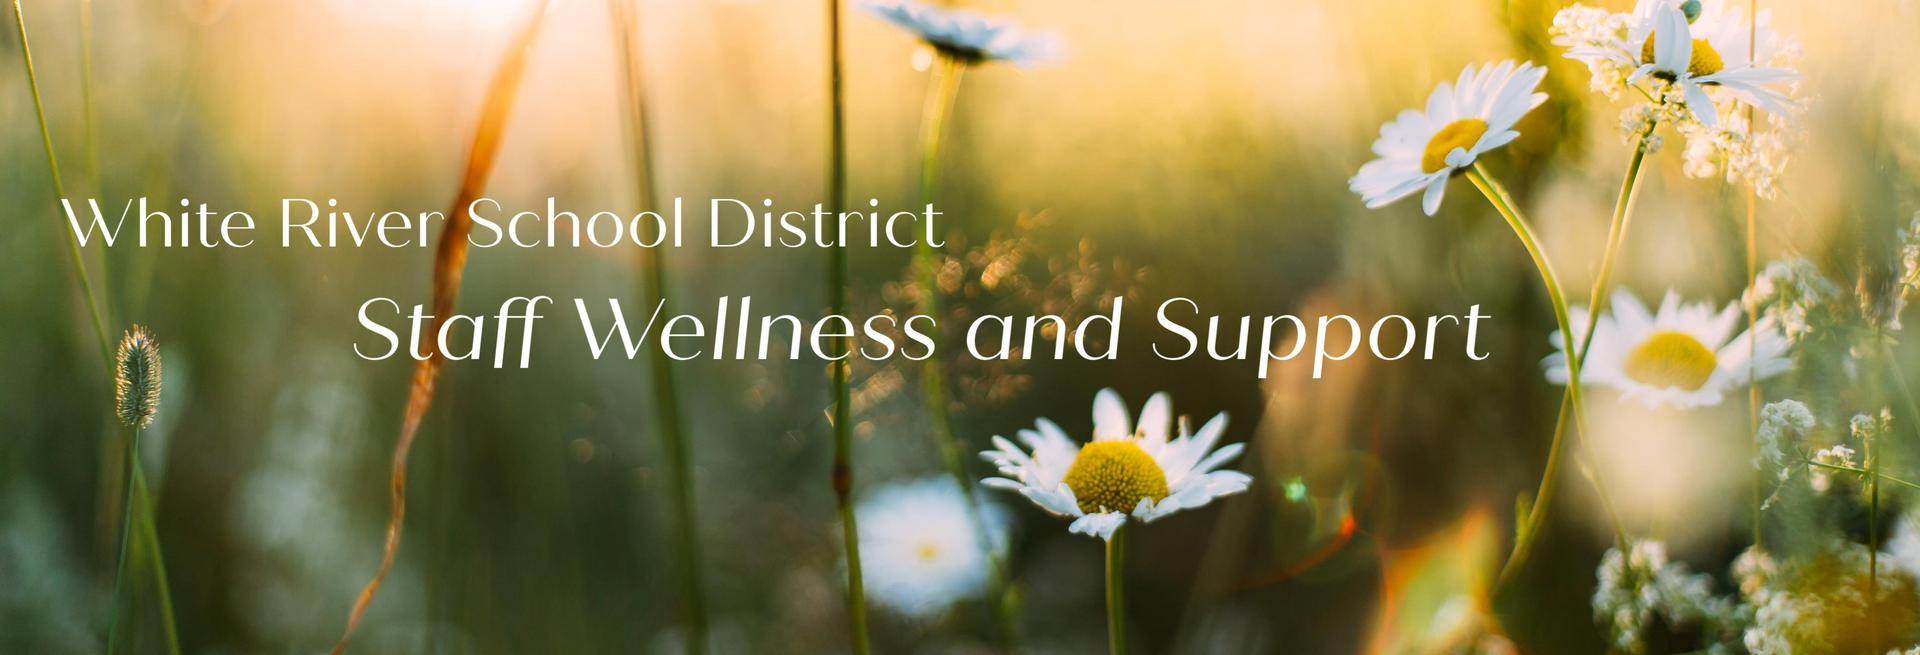 WRSD Staff Wellness and Supports